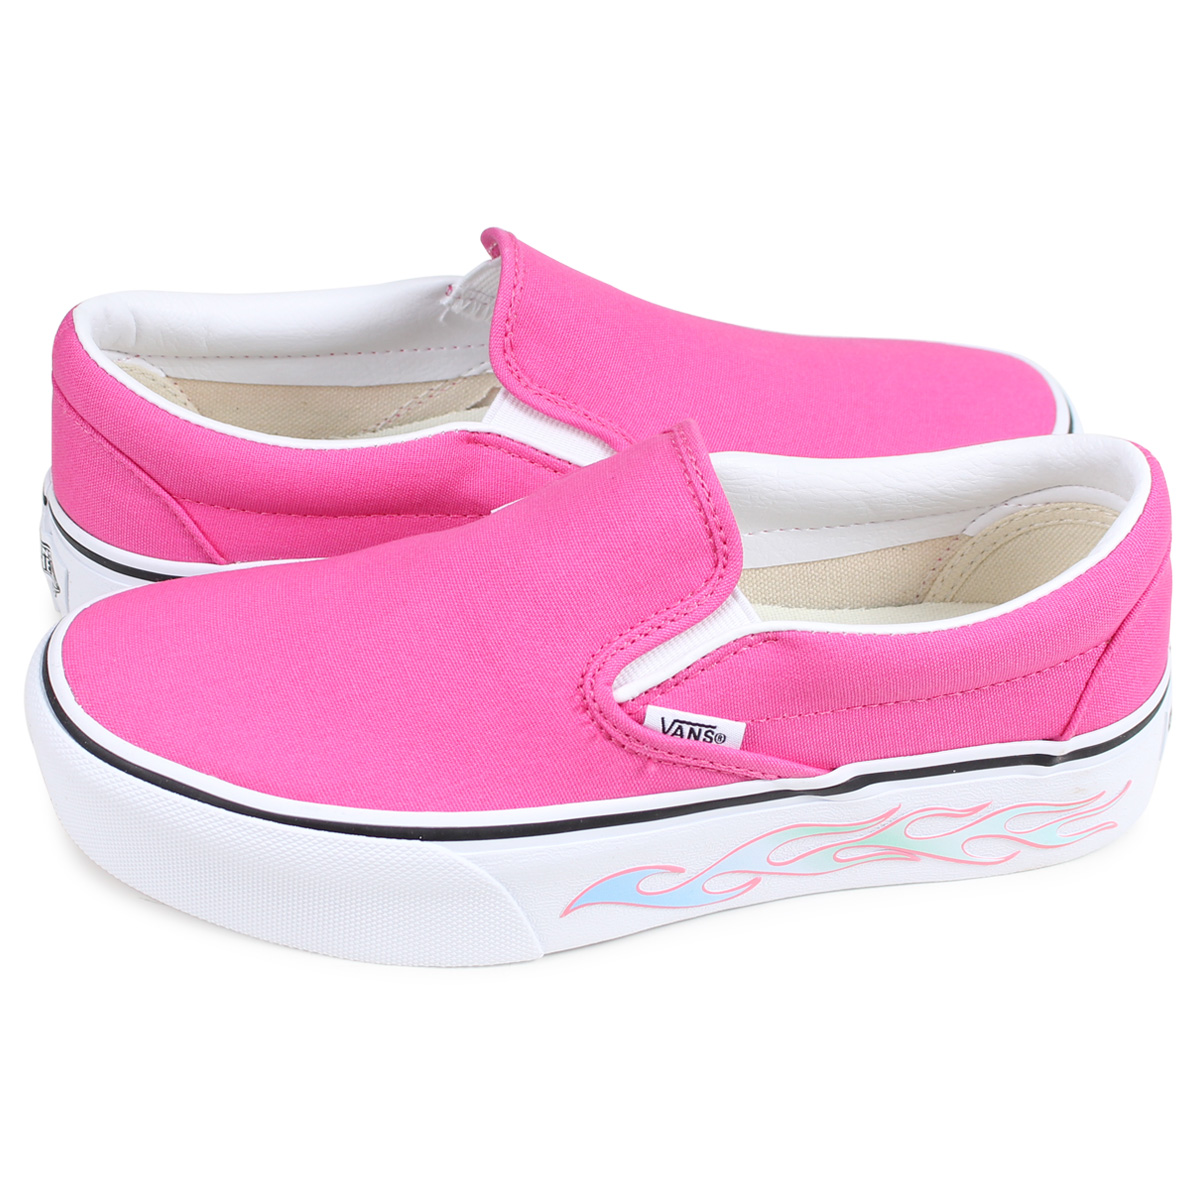 VANS CLASSIC SLIP-ON PLATFORM SIDEWALL FLAME vans slip-ons classical music  sneakers Lady's station wagons pink VN0A3JEZVN6